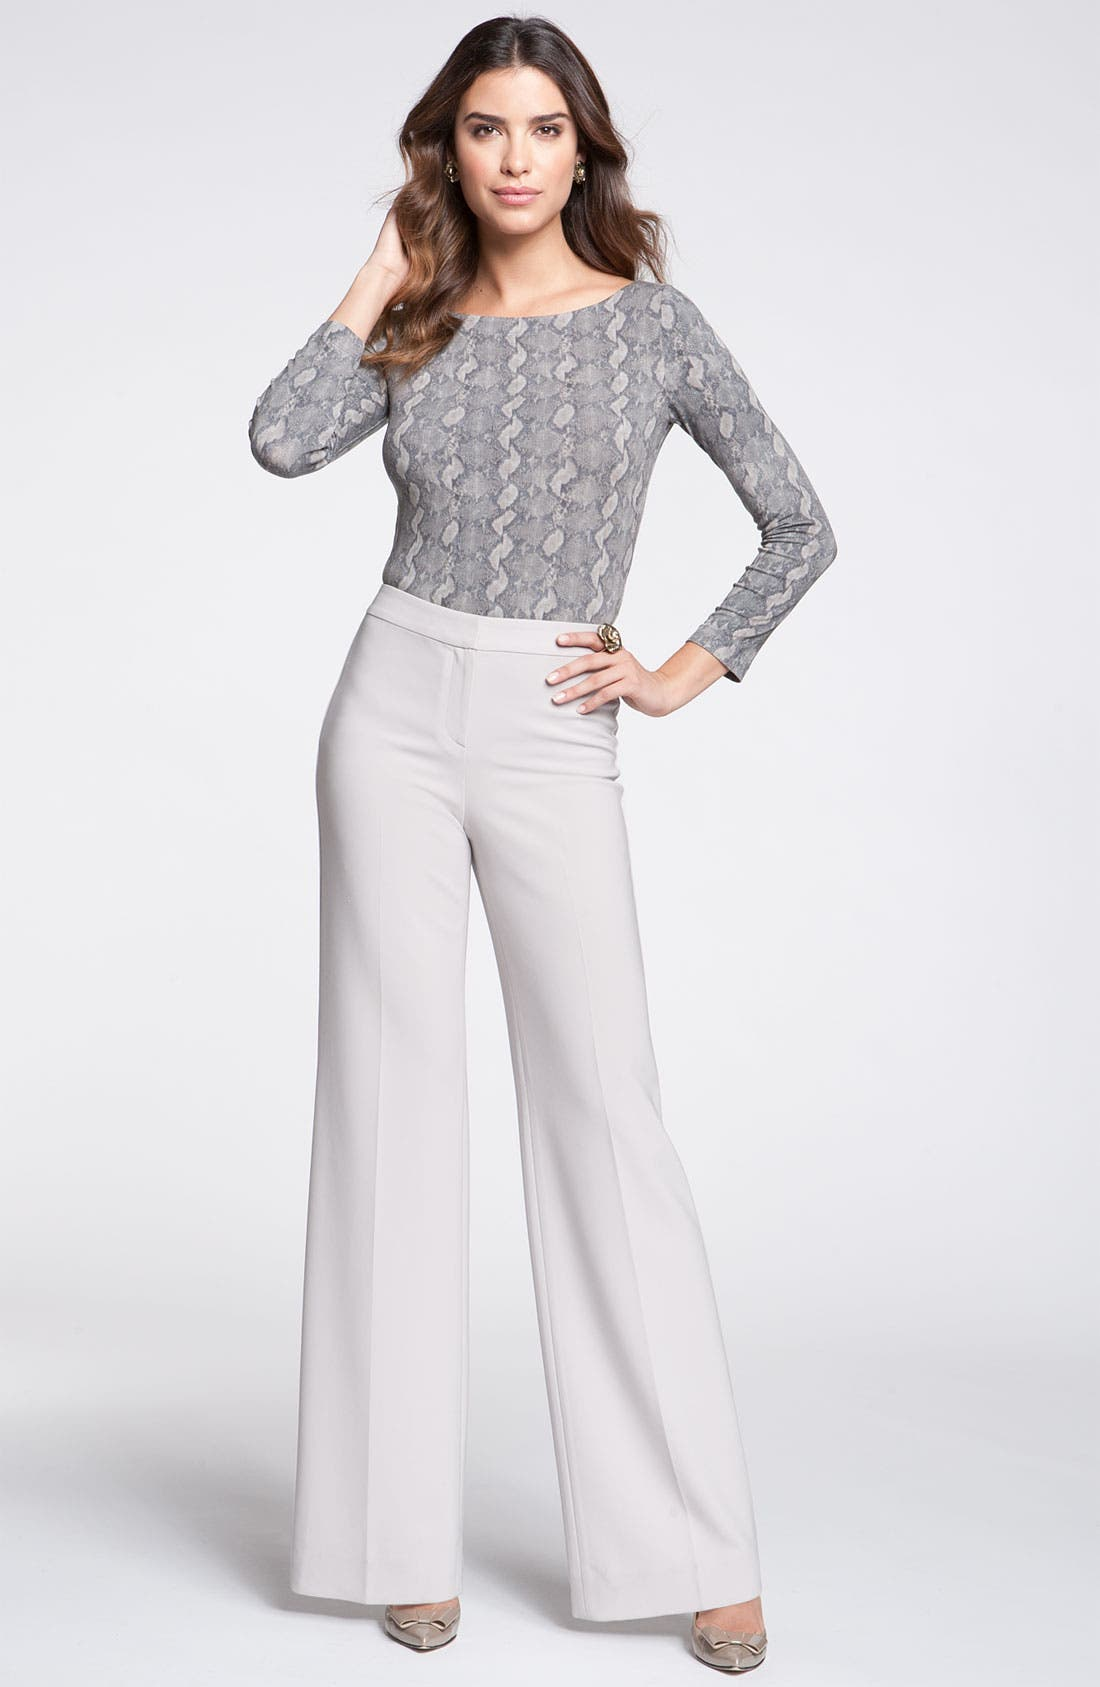 Alternate Image 1 Selected - St. John Collection Crepe Marocain Wide Leg Pants